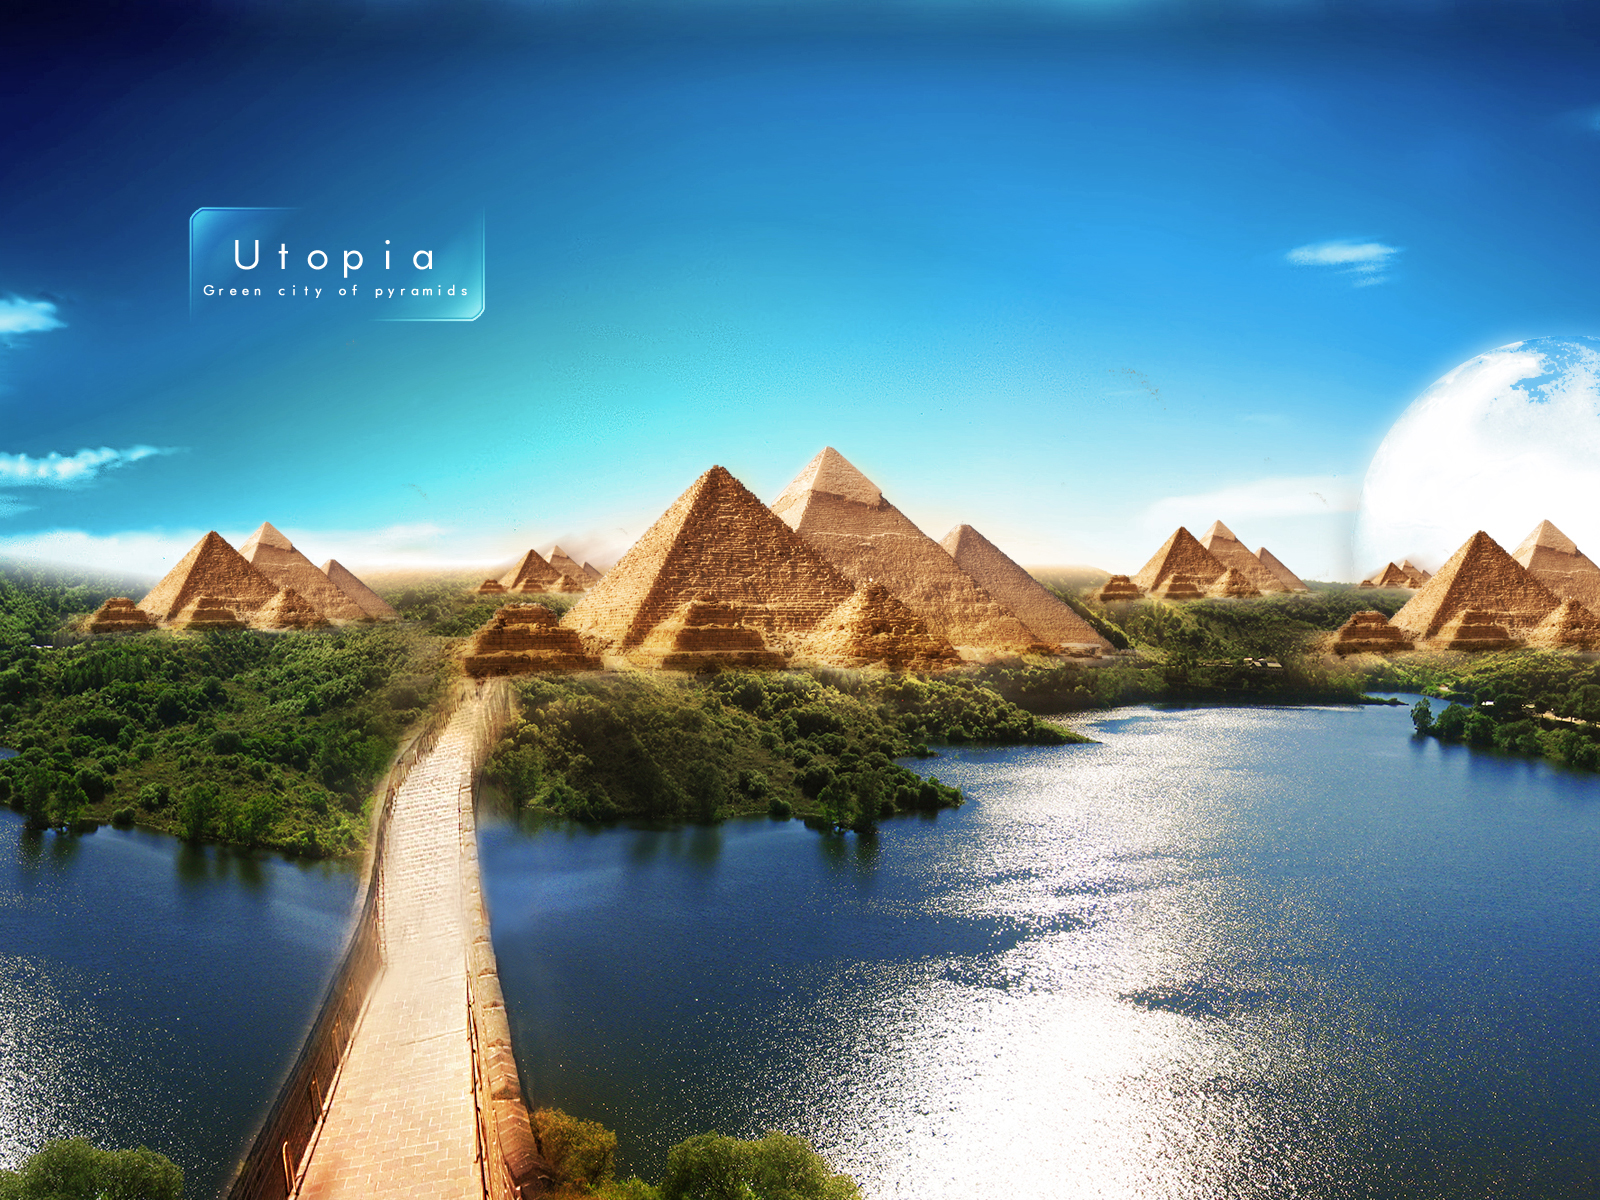 pyramids of utpoia beautiful scenery, hd world, 4k wallpapers